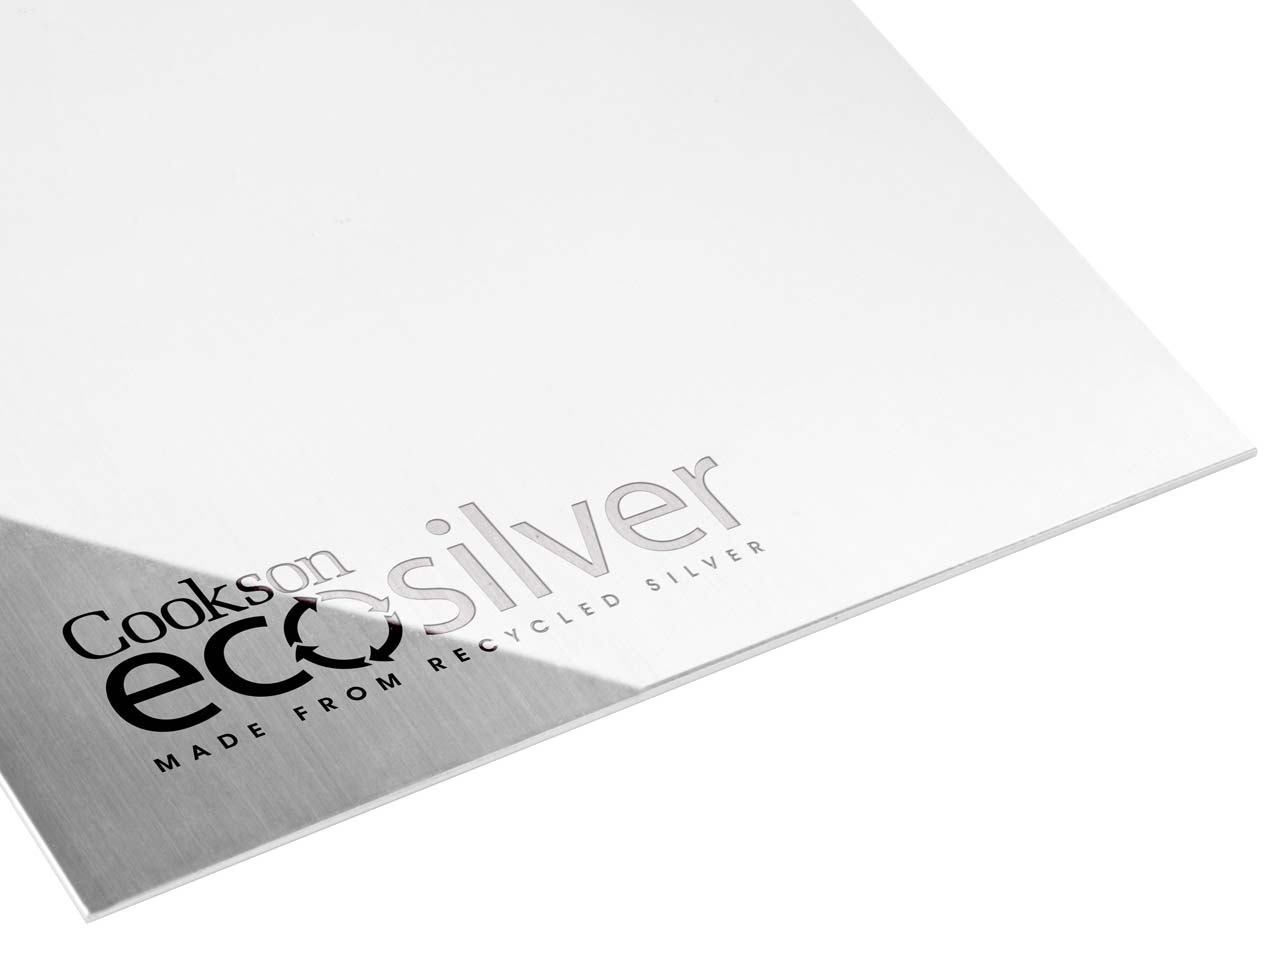 Ecosilver Sheet 0.50mm